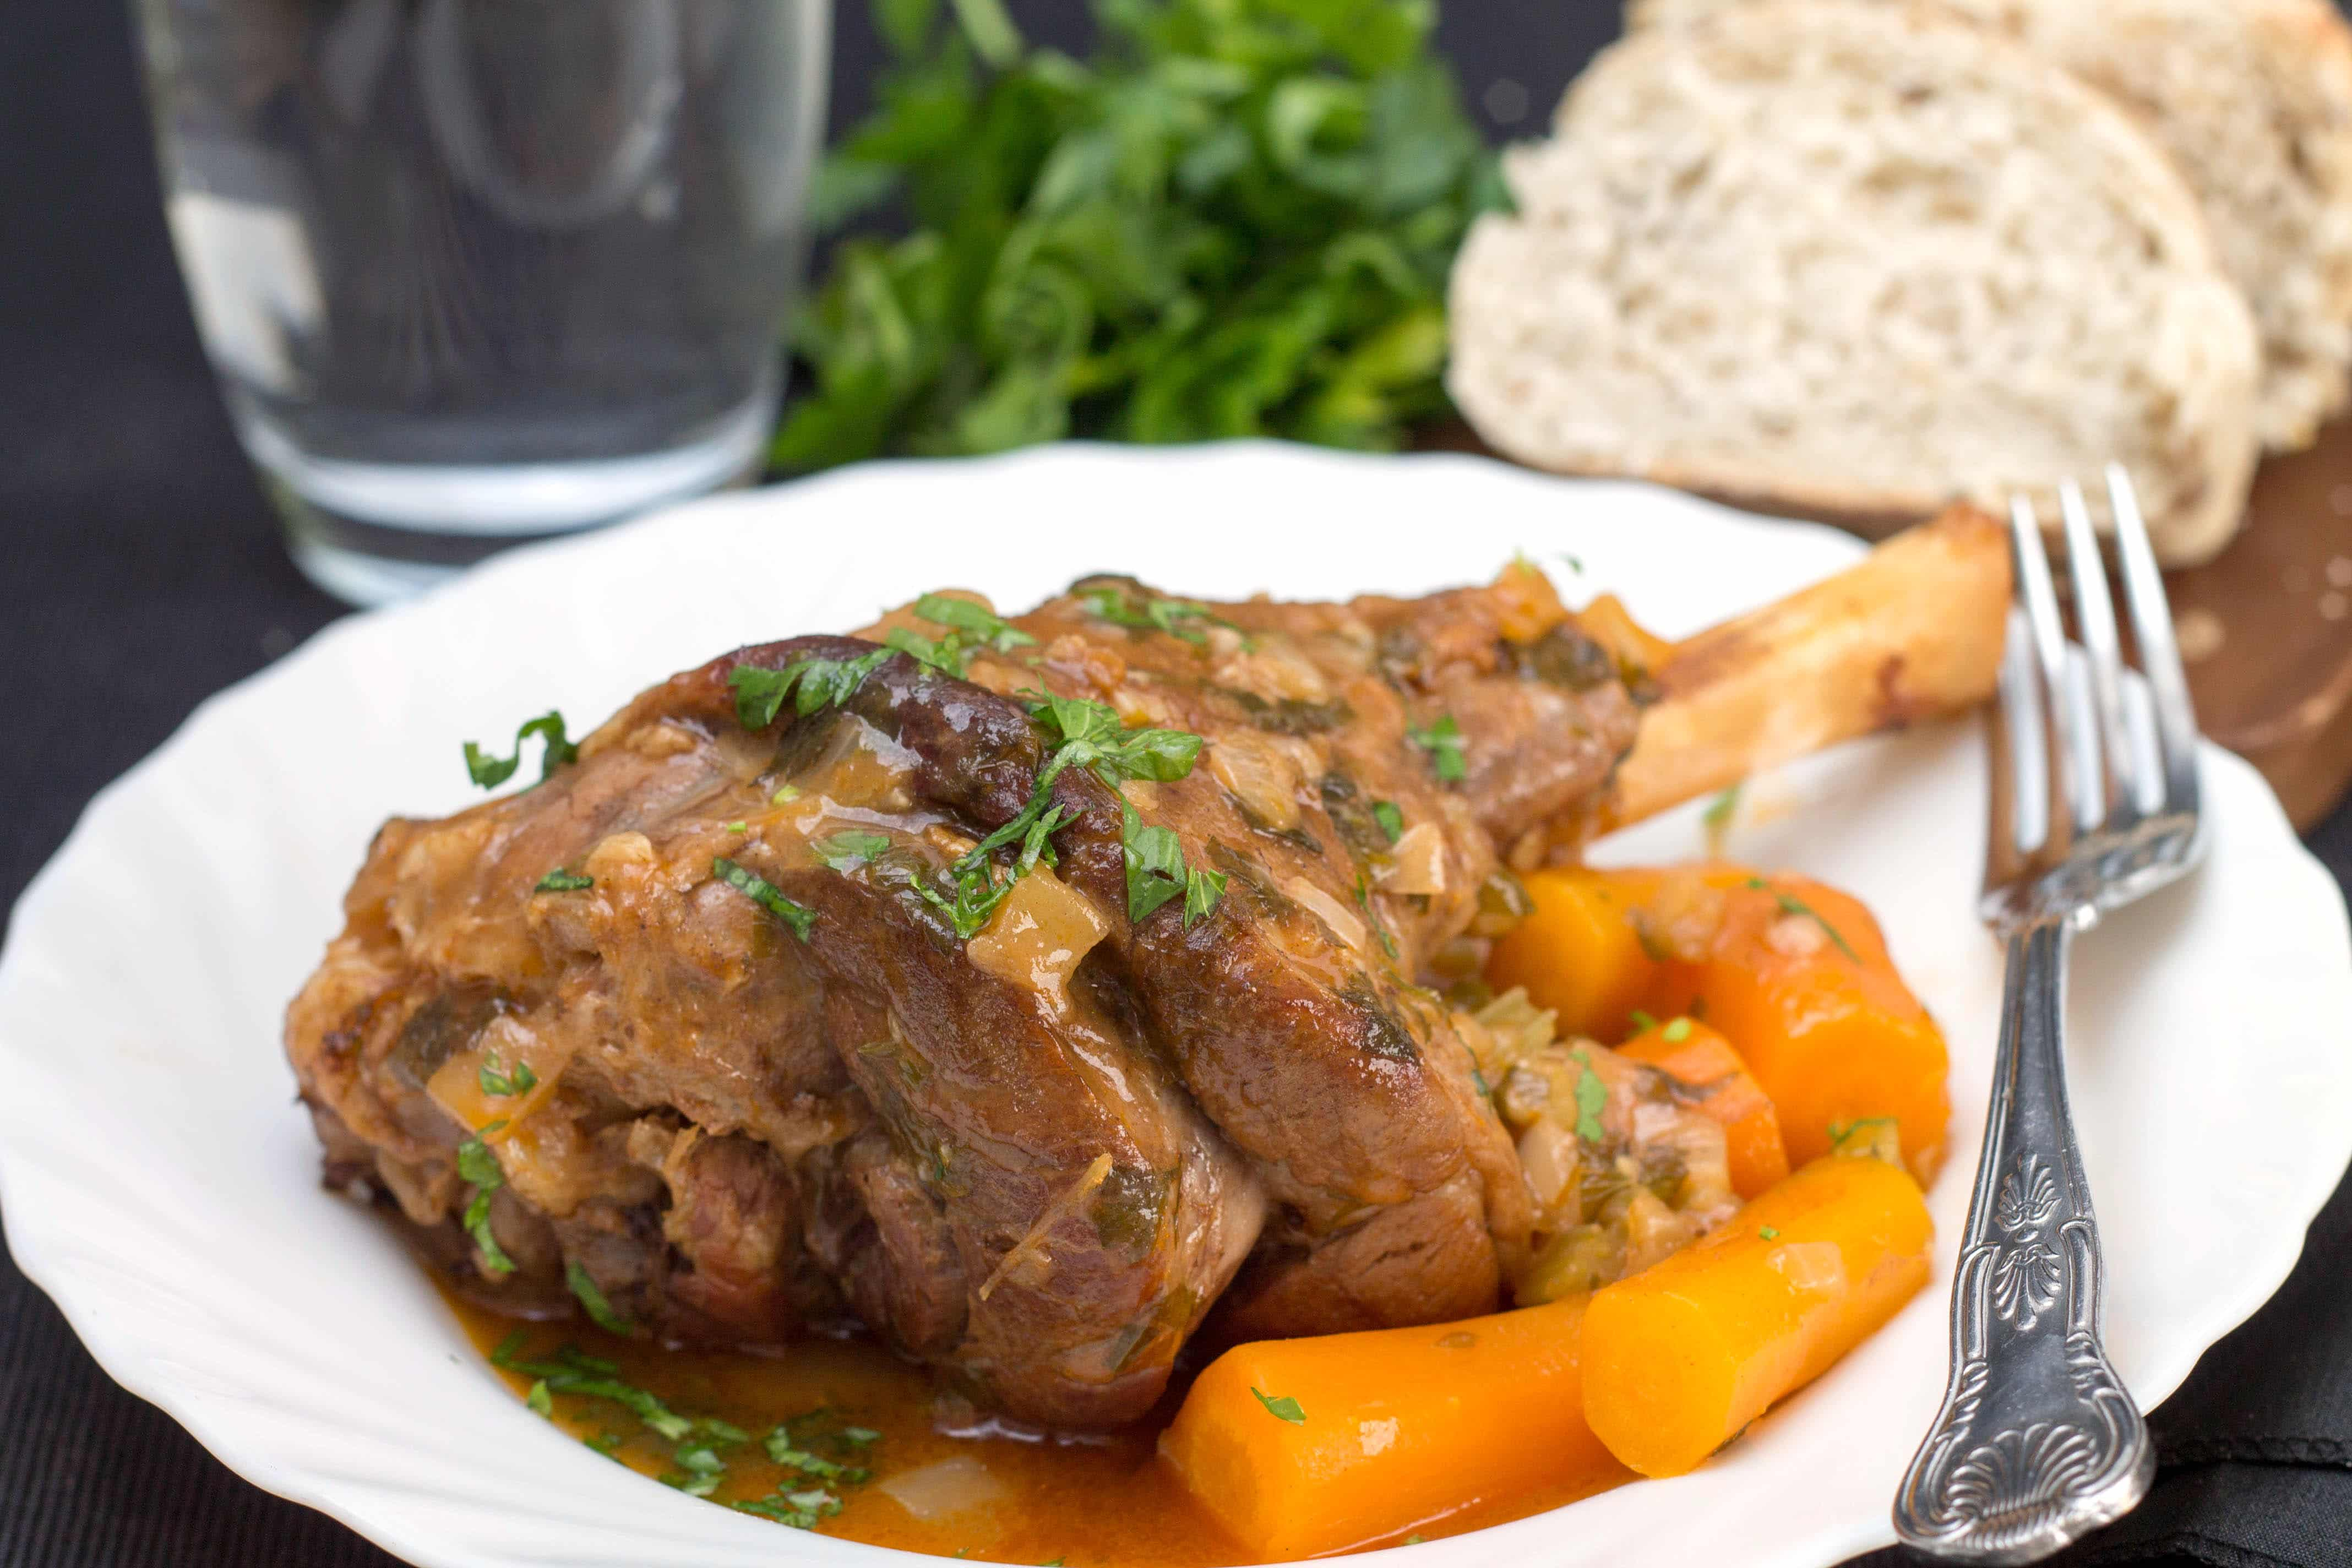 Slow Cooked Lamb Shanks - Erren's Kitchen - This recipe makes a hearty, slow-cooked dish. The succulent lamb meat ends up, melt in your mouth tender!